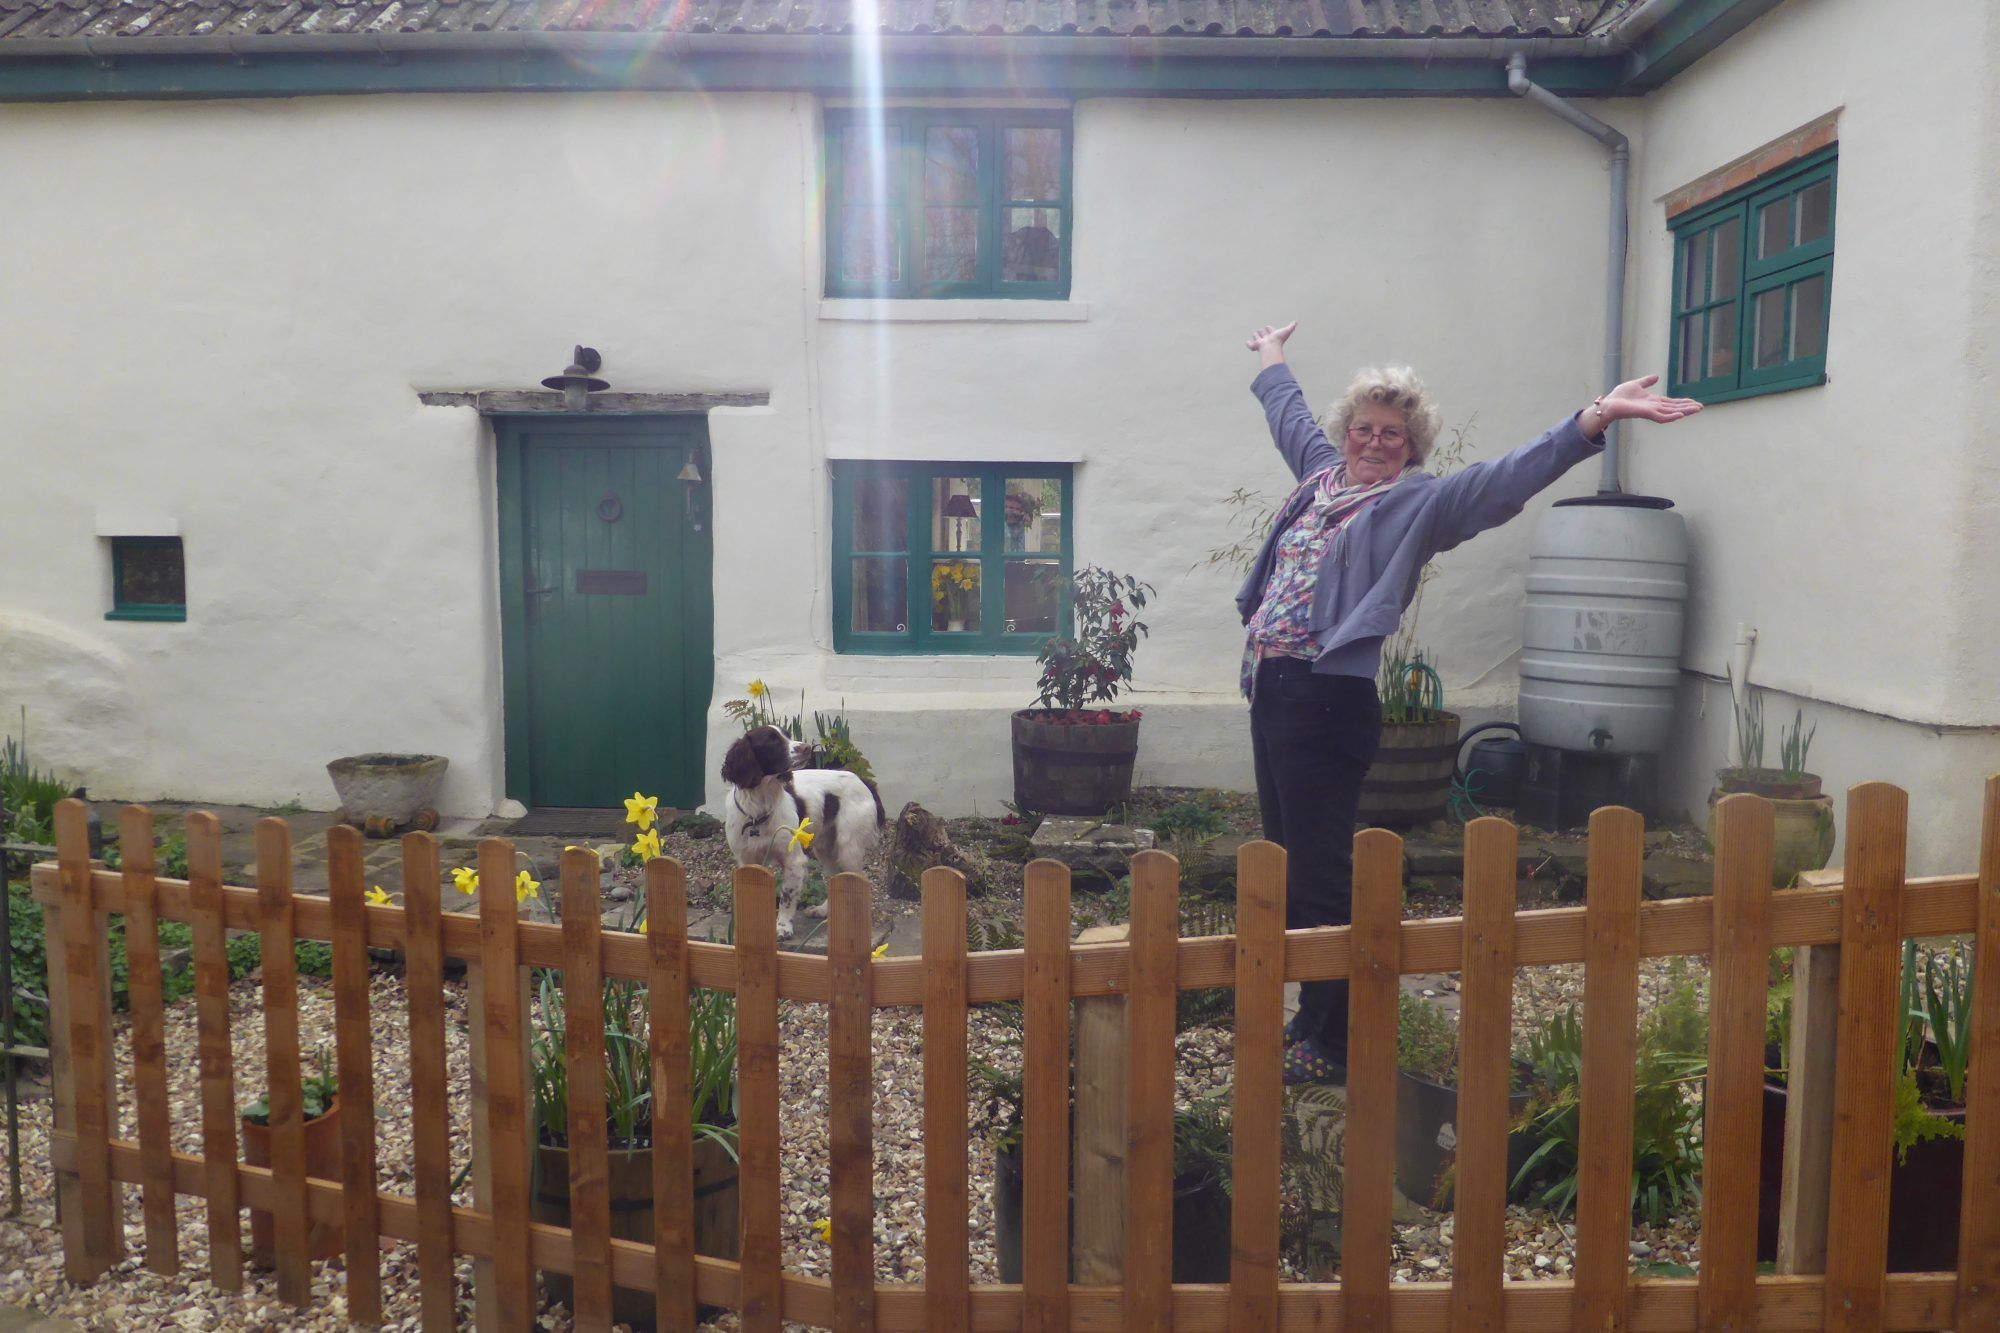 Image-of-a-happy-customer-Nikki-standing-by-the-discreet-high-quality-below-ground-WPL-Diamond-package-wastewater-sewage-treatment-pant-for-off-mains-drainage- at-a-beautiful-cottage-in-the-uk-the-wpl-diamond-replaced-a-leaking-septic-tank.